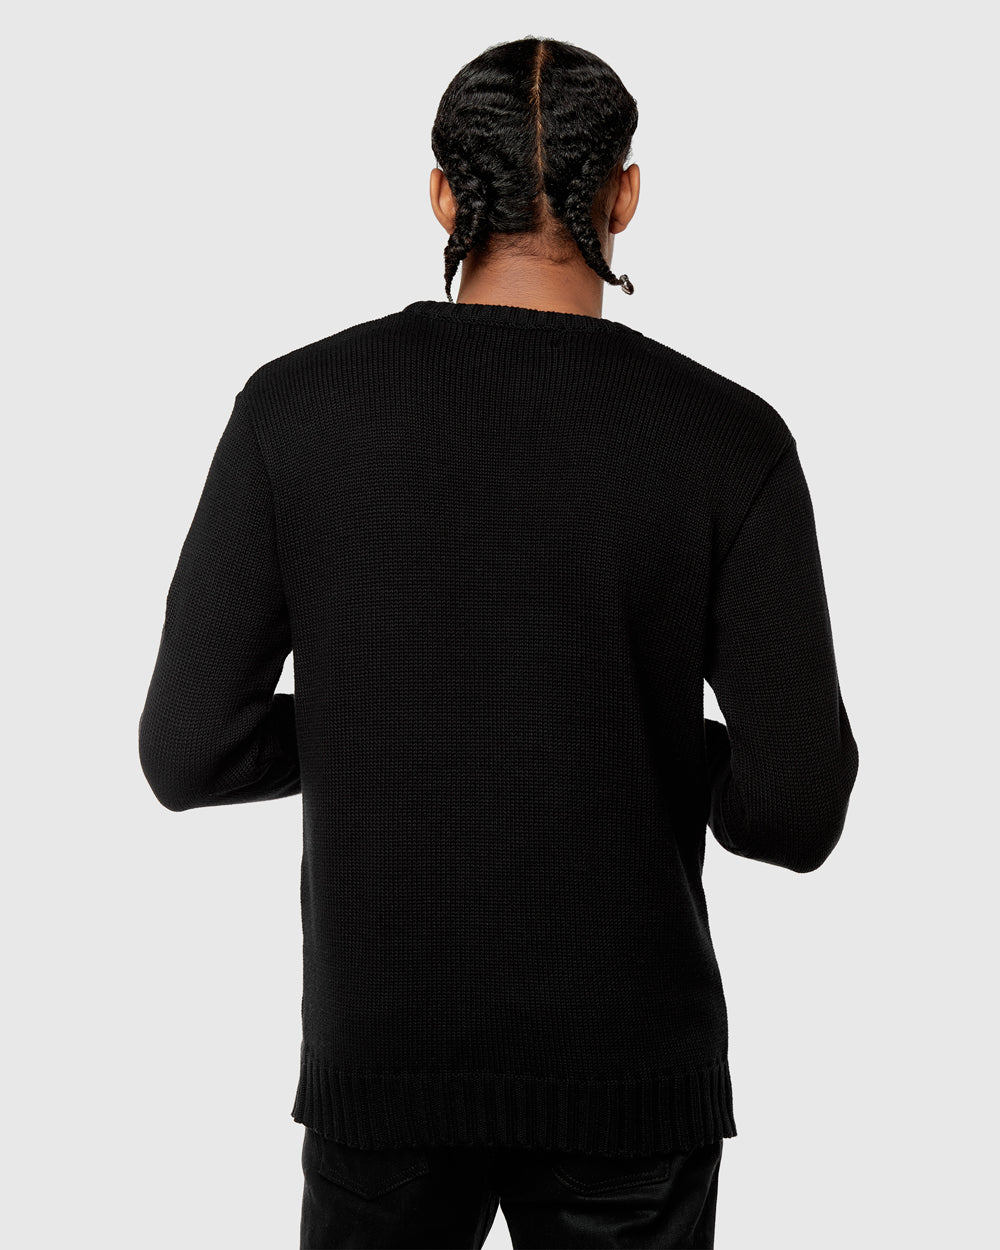 OVO SIGNATURE KNIT SWEATER - BLACK